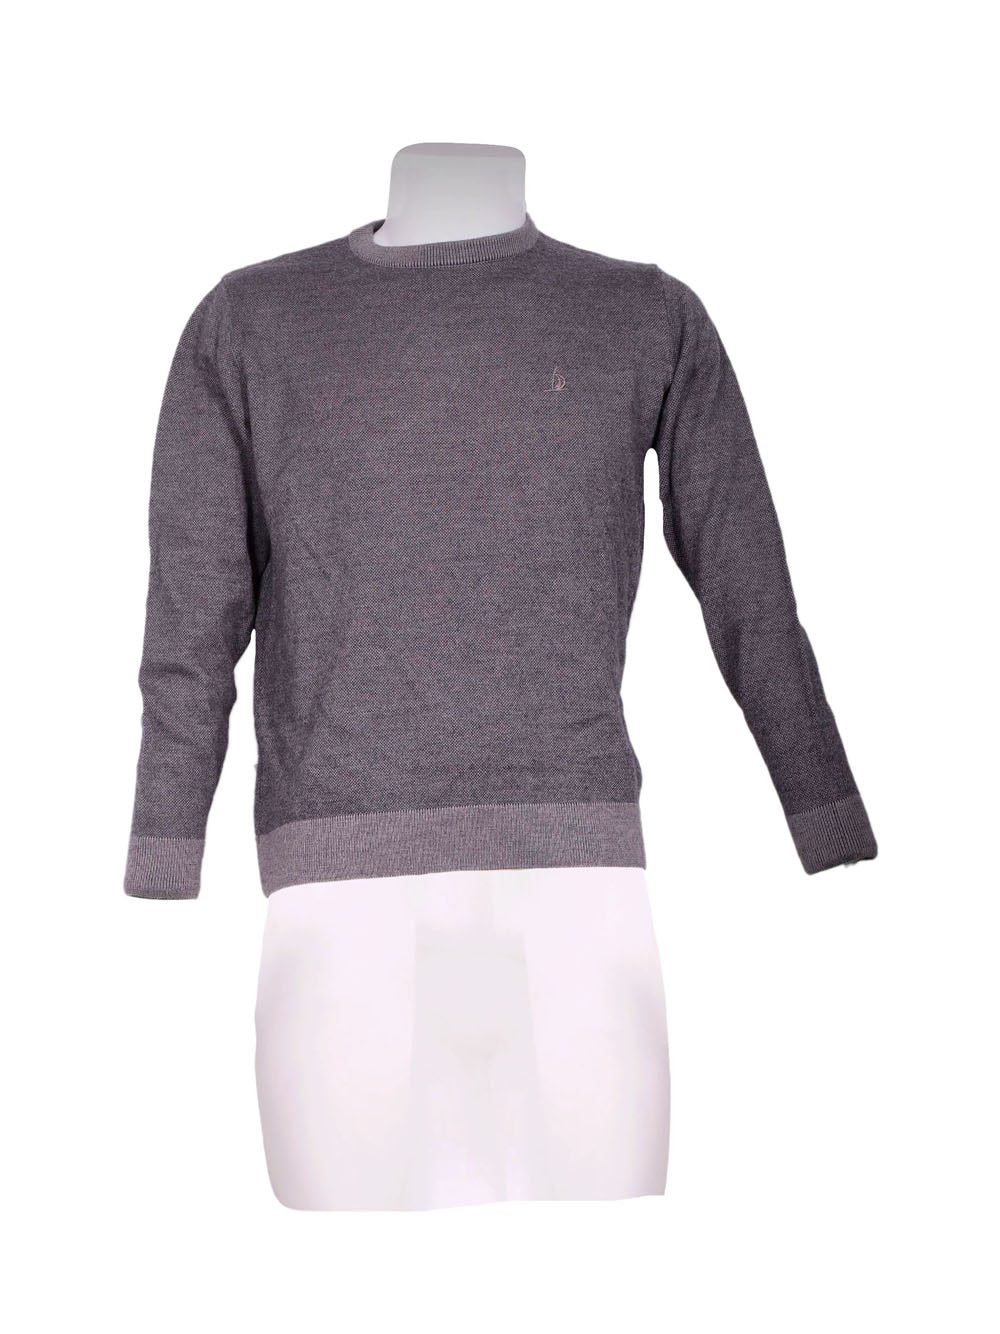 Front photo of Preloved Navy Sail Grey Man's sweater - size 38/M